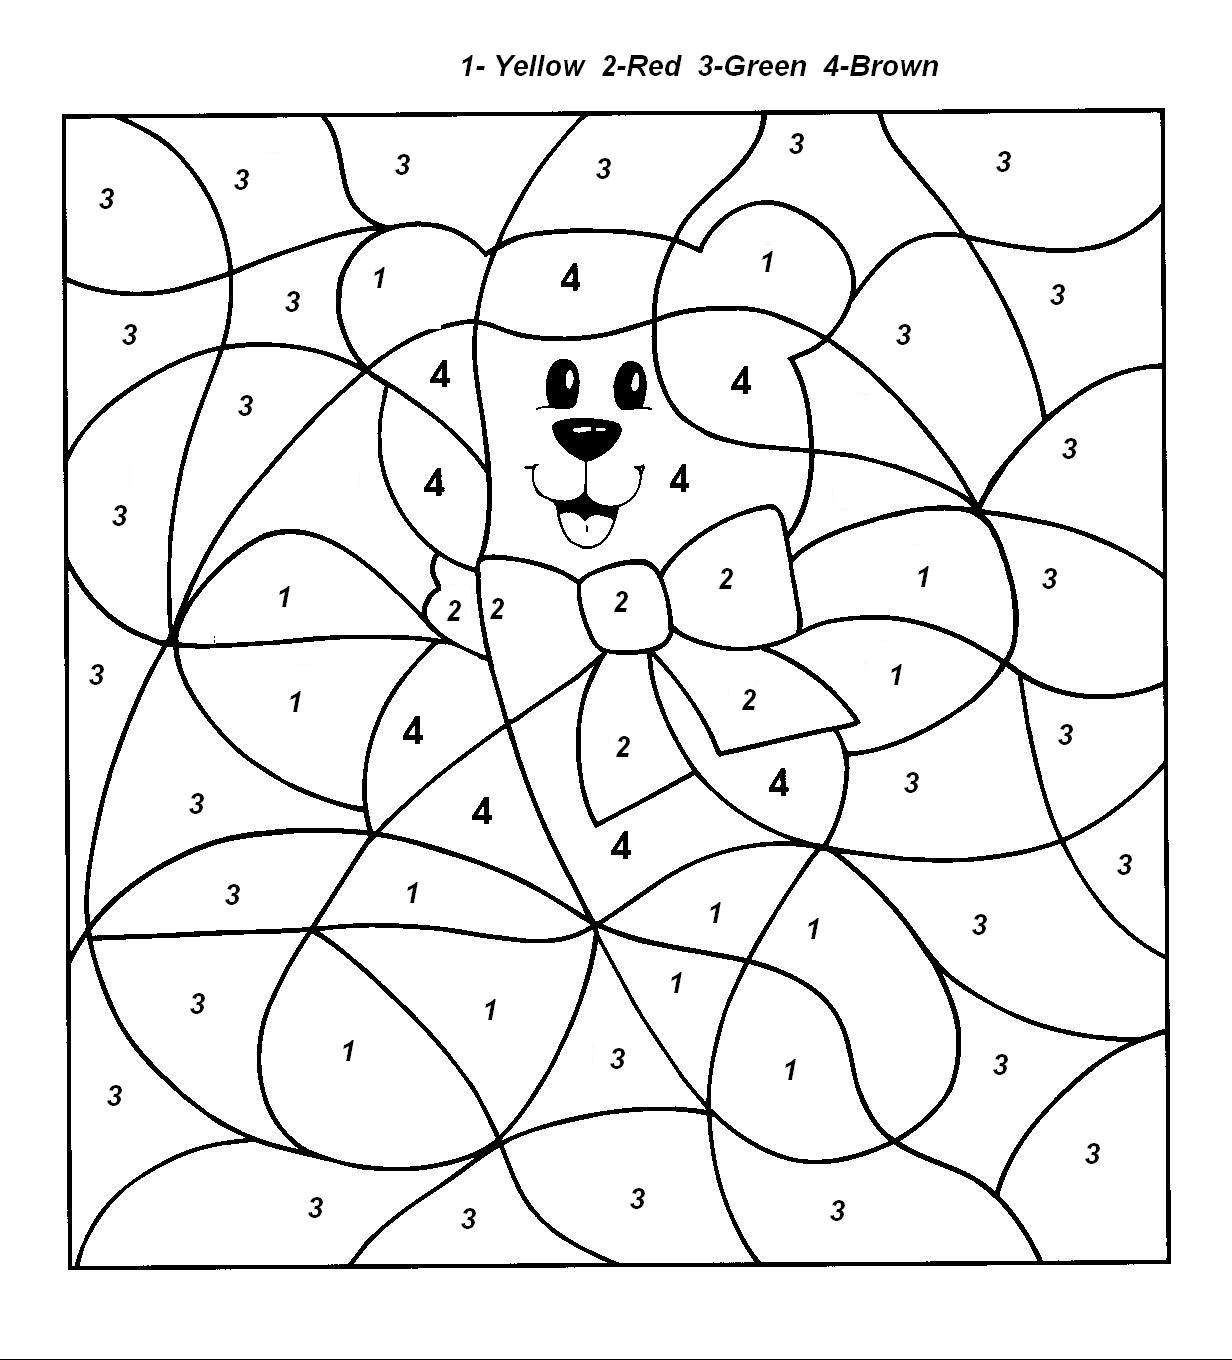 color by number coloring pages for kids 92 - Coloring Pages With Numbers